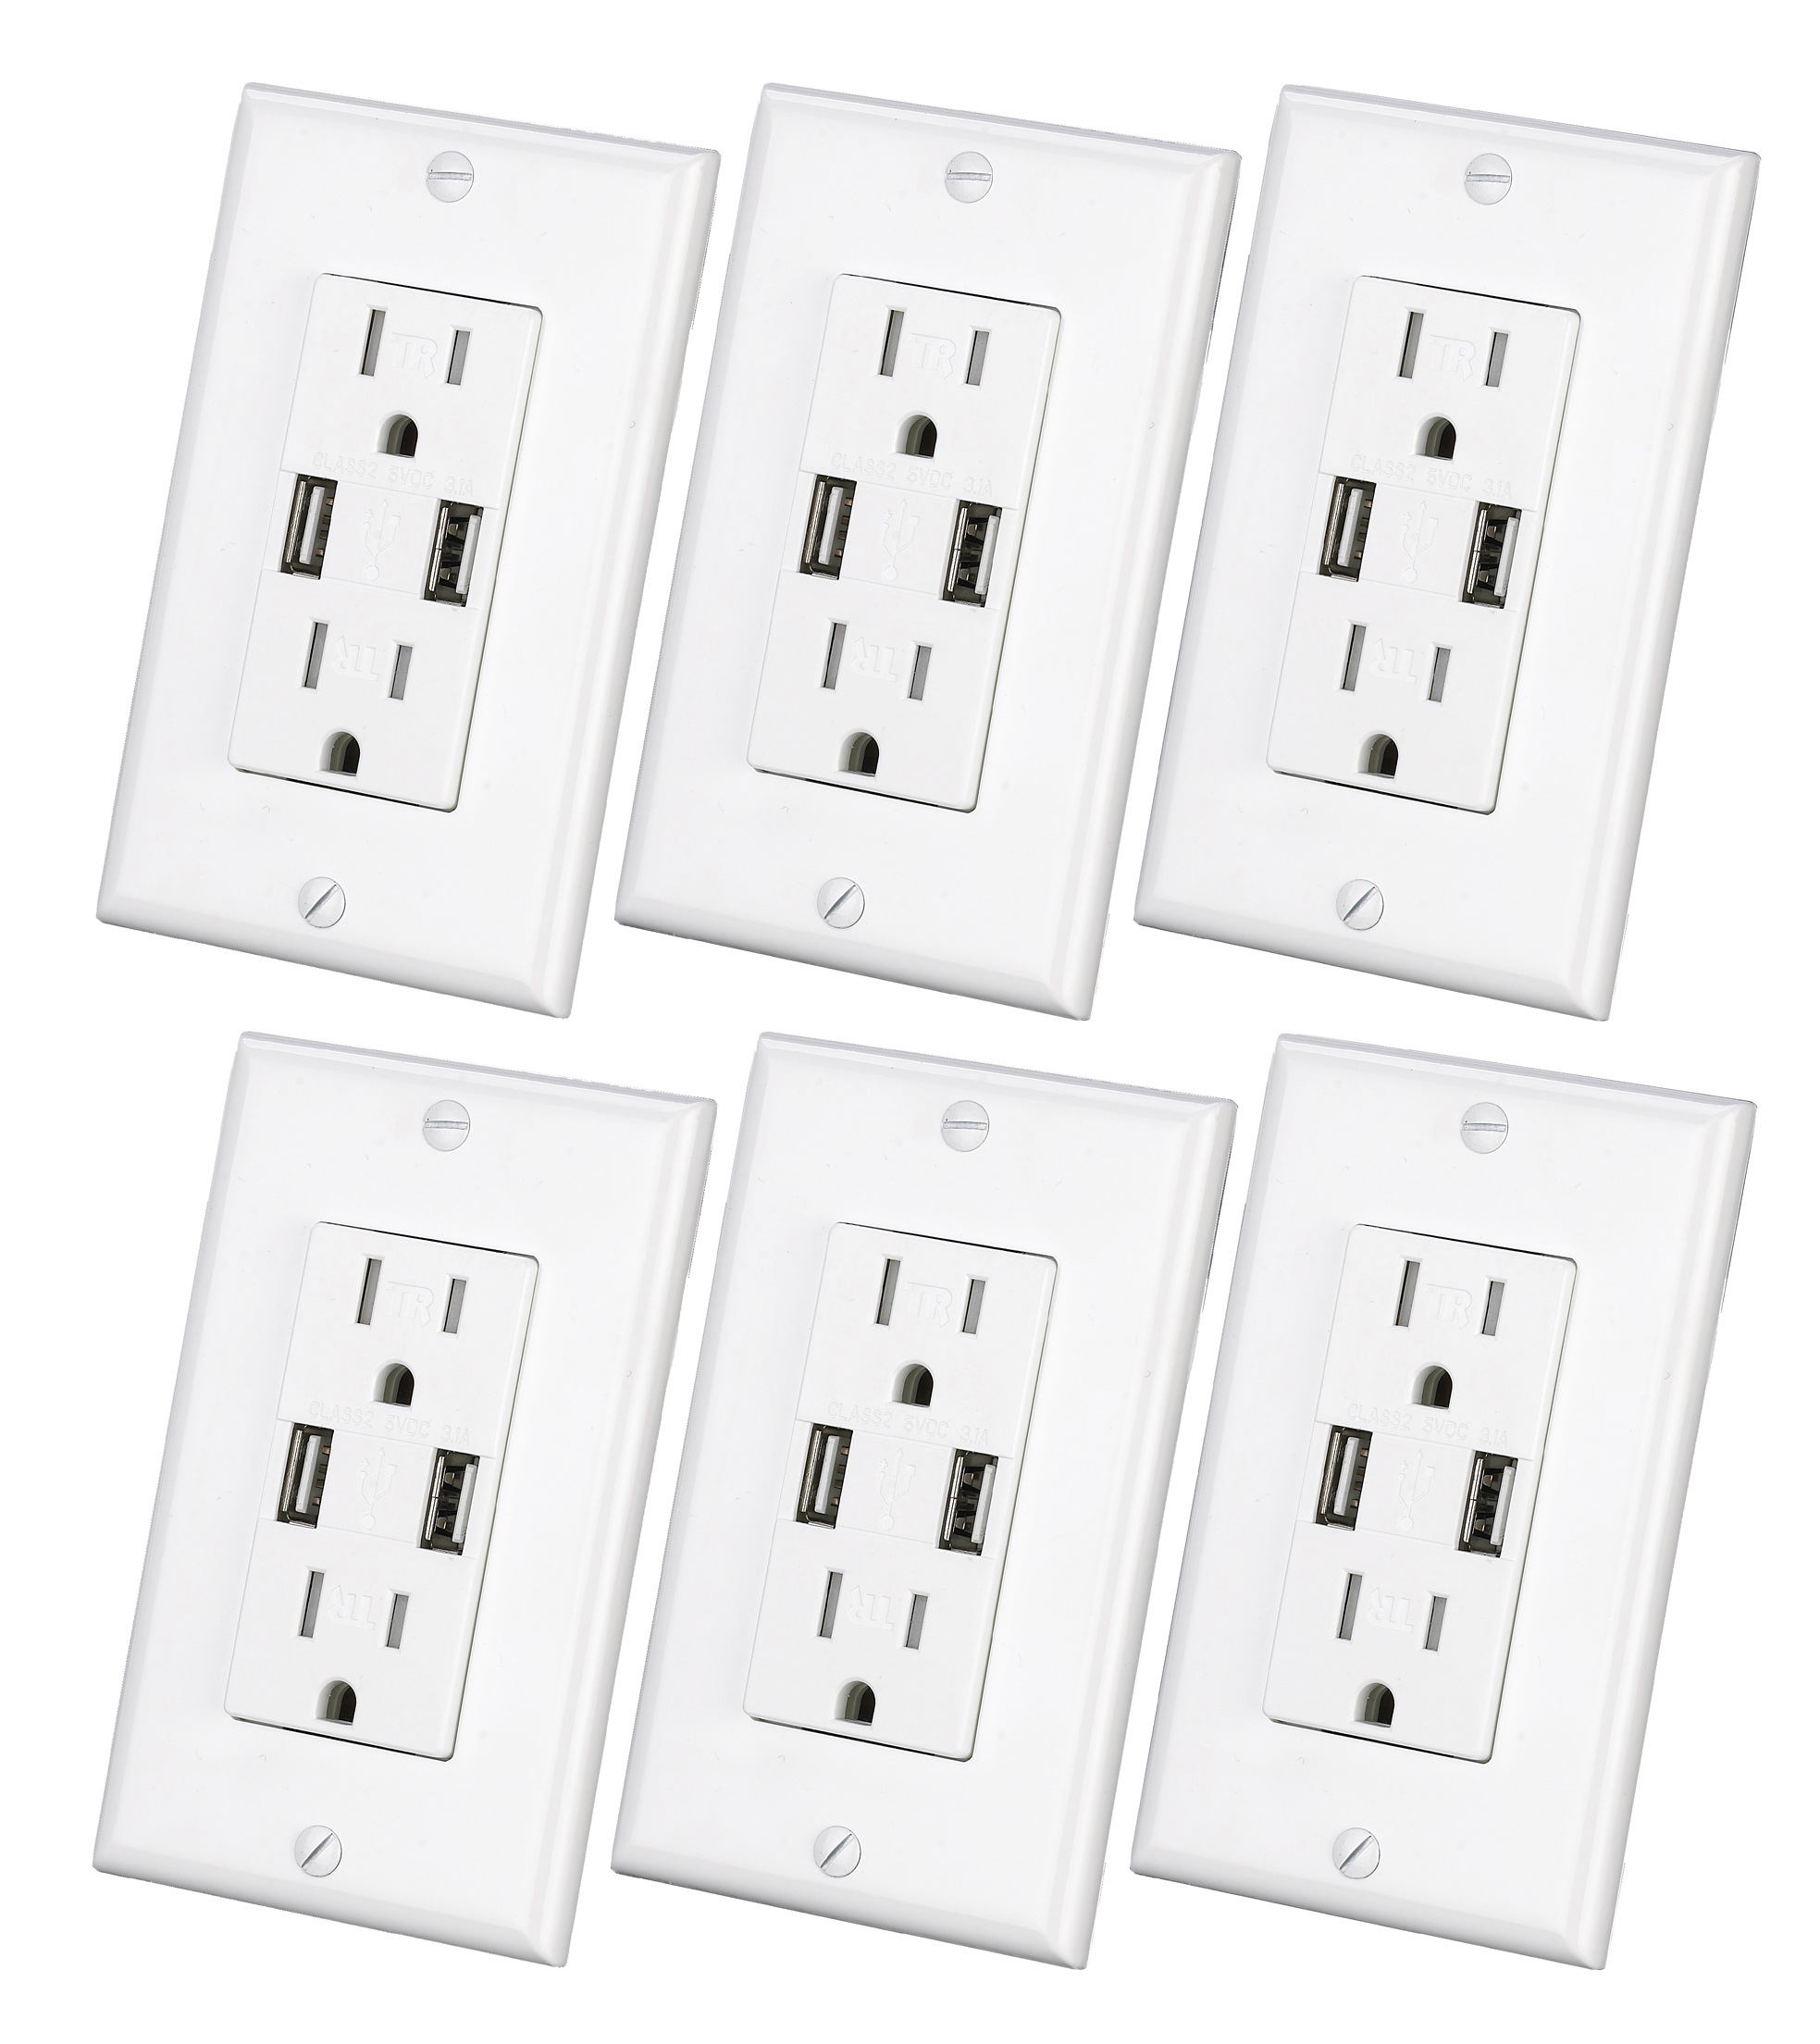 3 1a Usb Wall Outlet 6pack